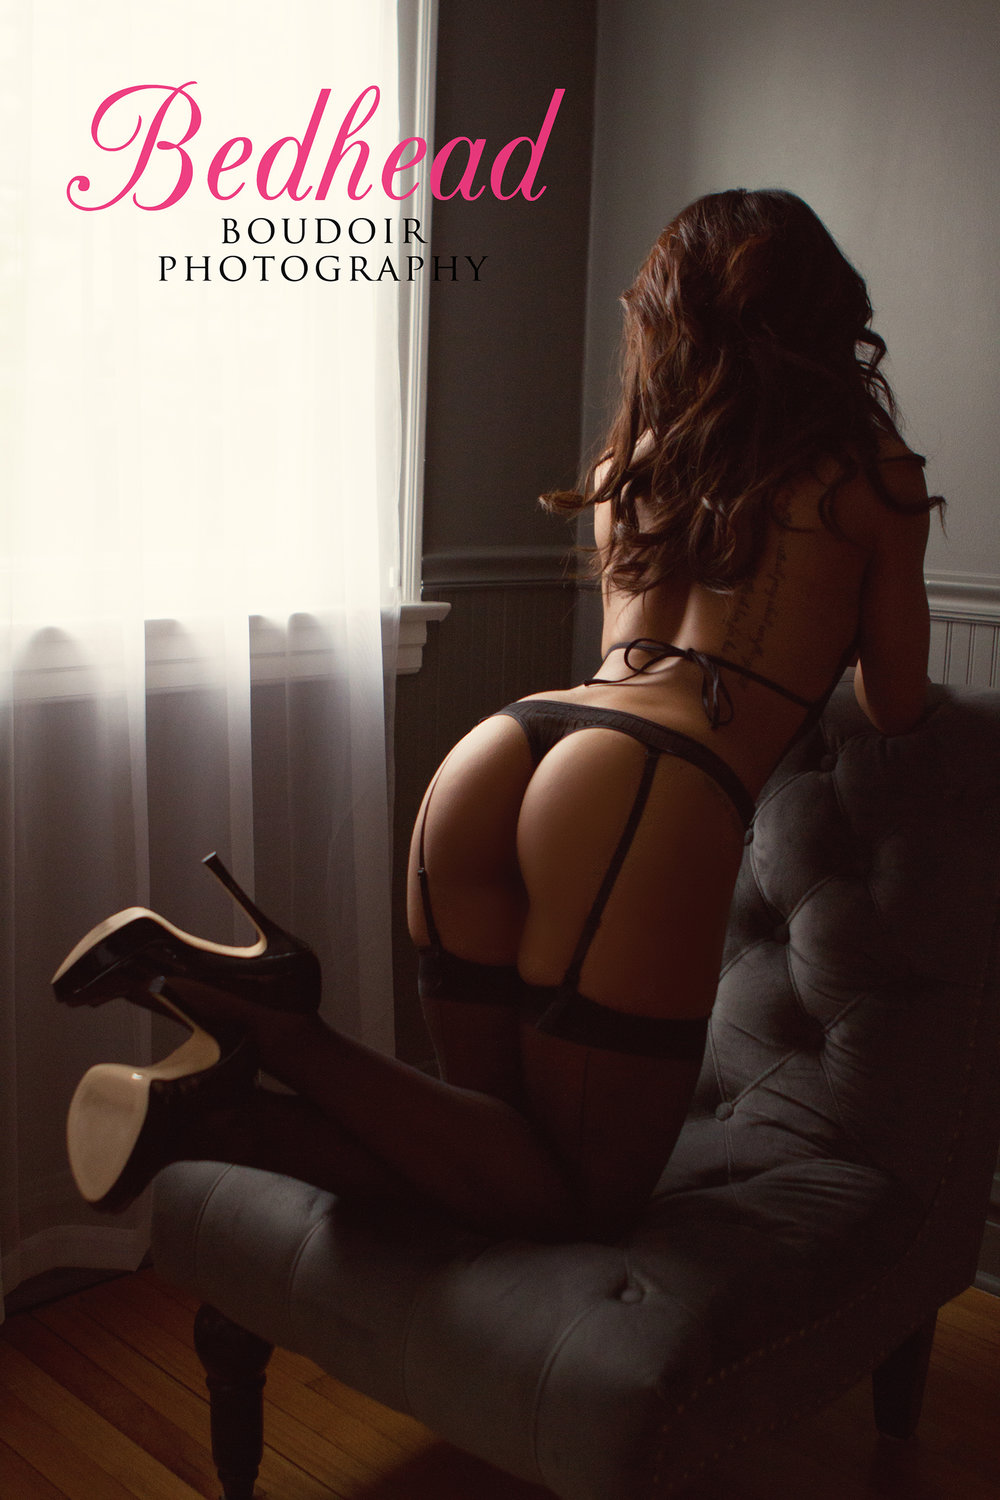 Boudoir_Photography_Chicago_Bedhead_56.jpg